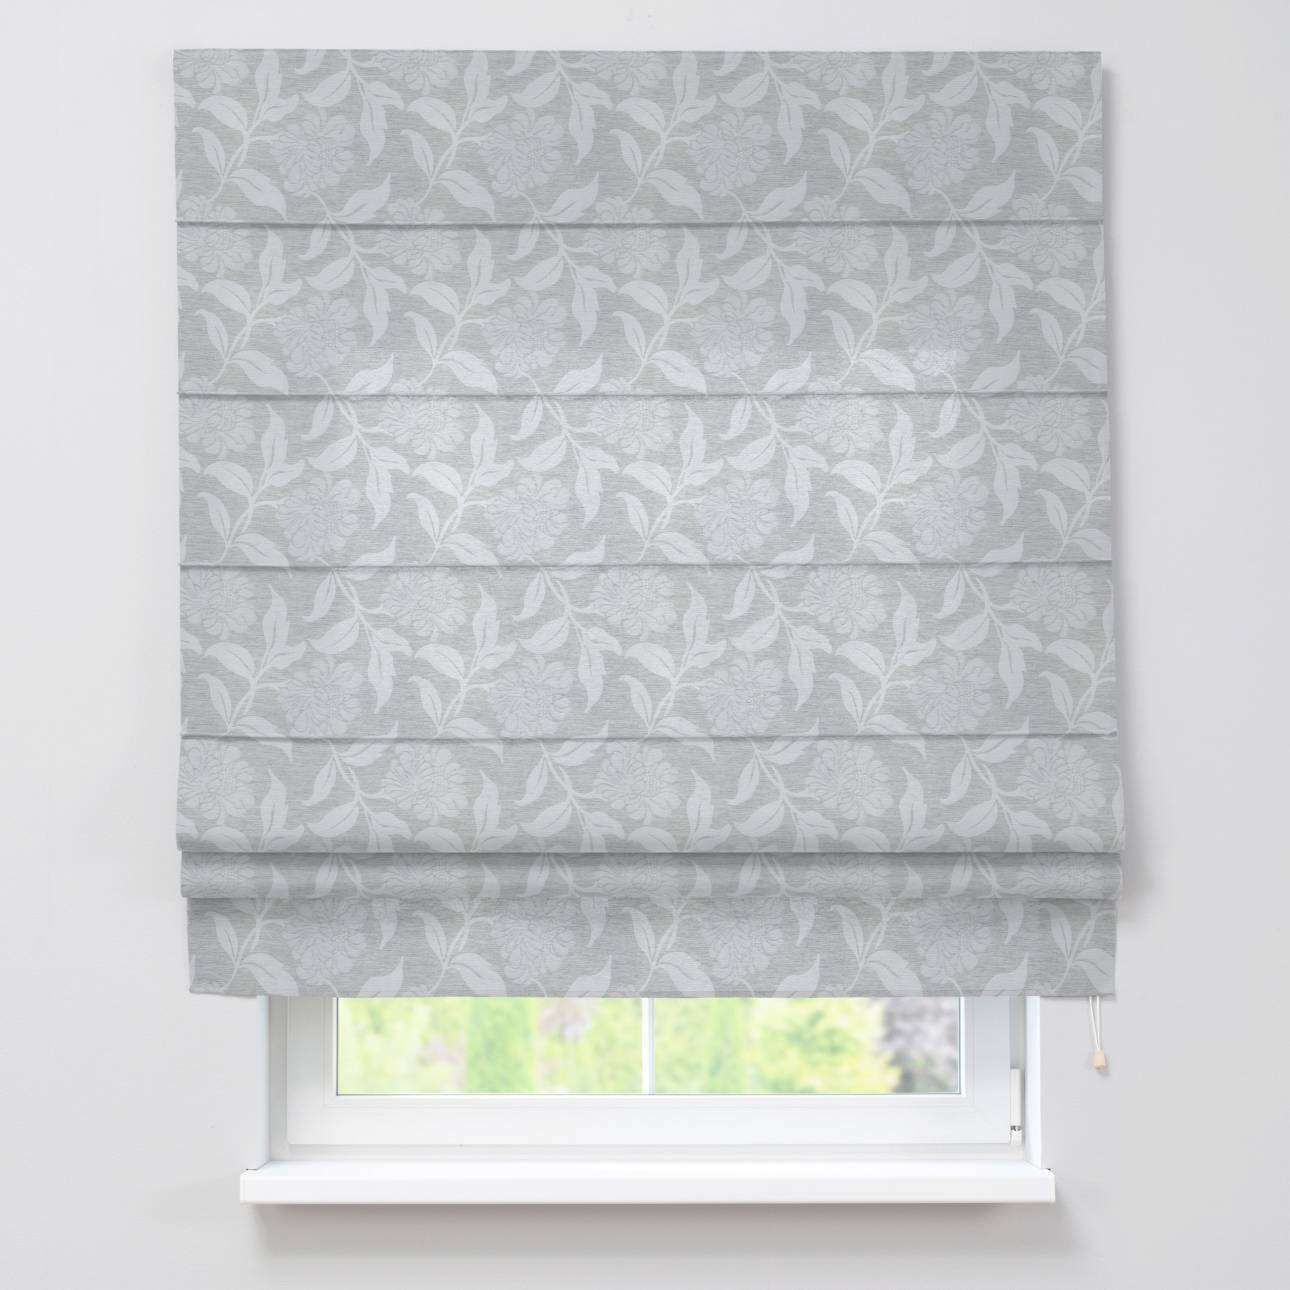 Padva roman blind  80 x 170 cm (31.5 x 67 inch) in collection Venice, fabric: 140-51